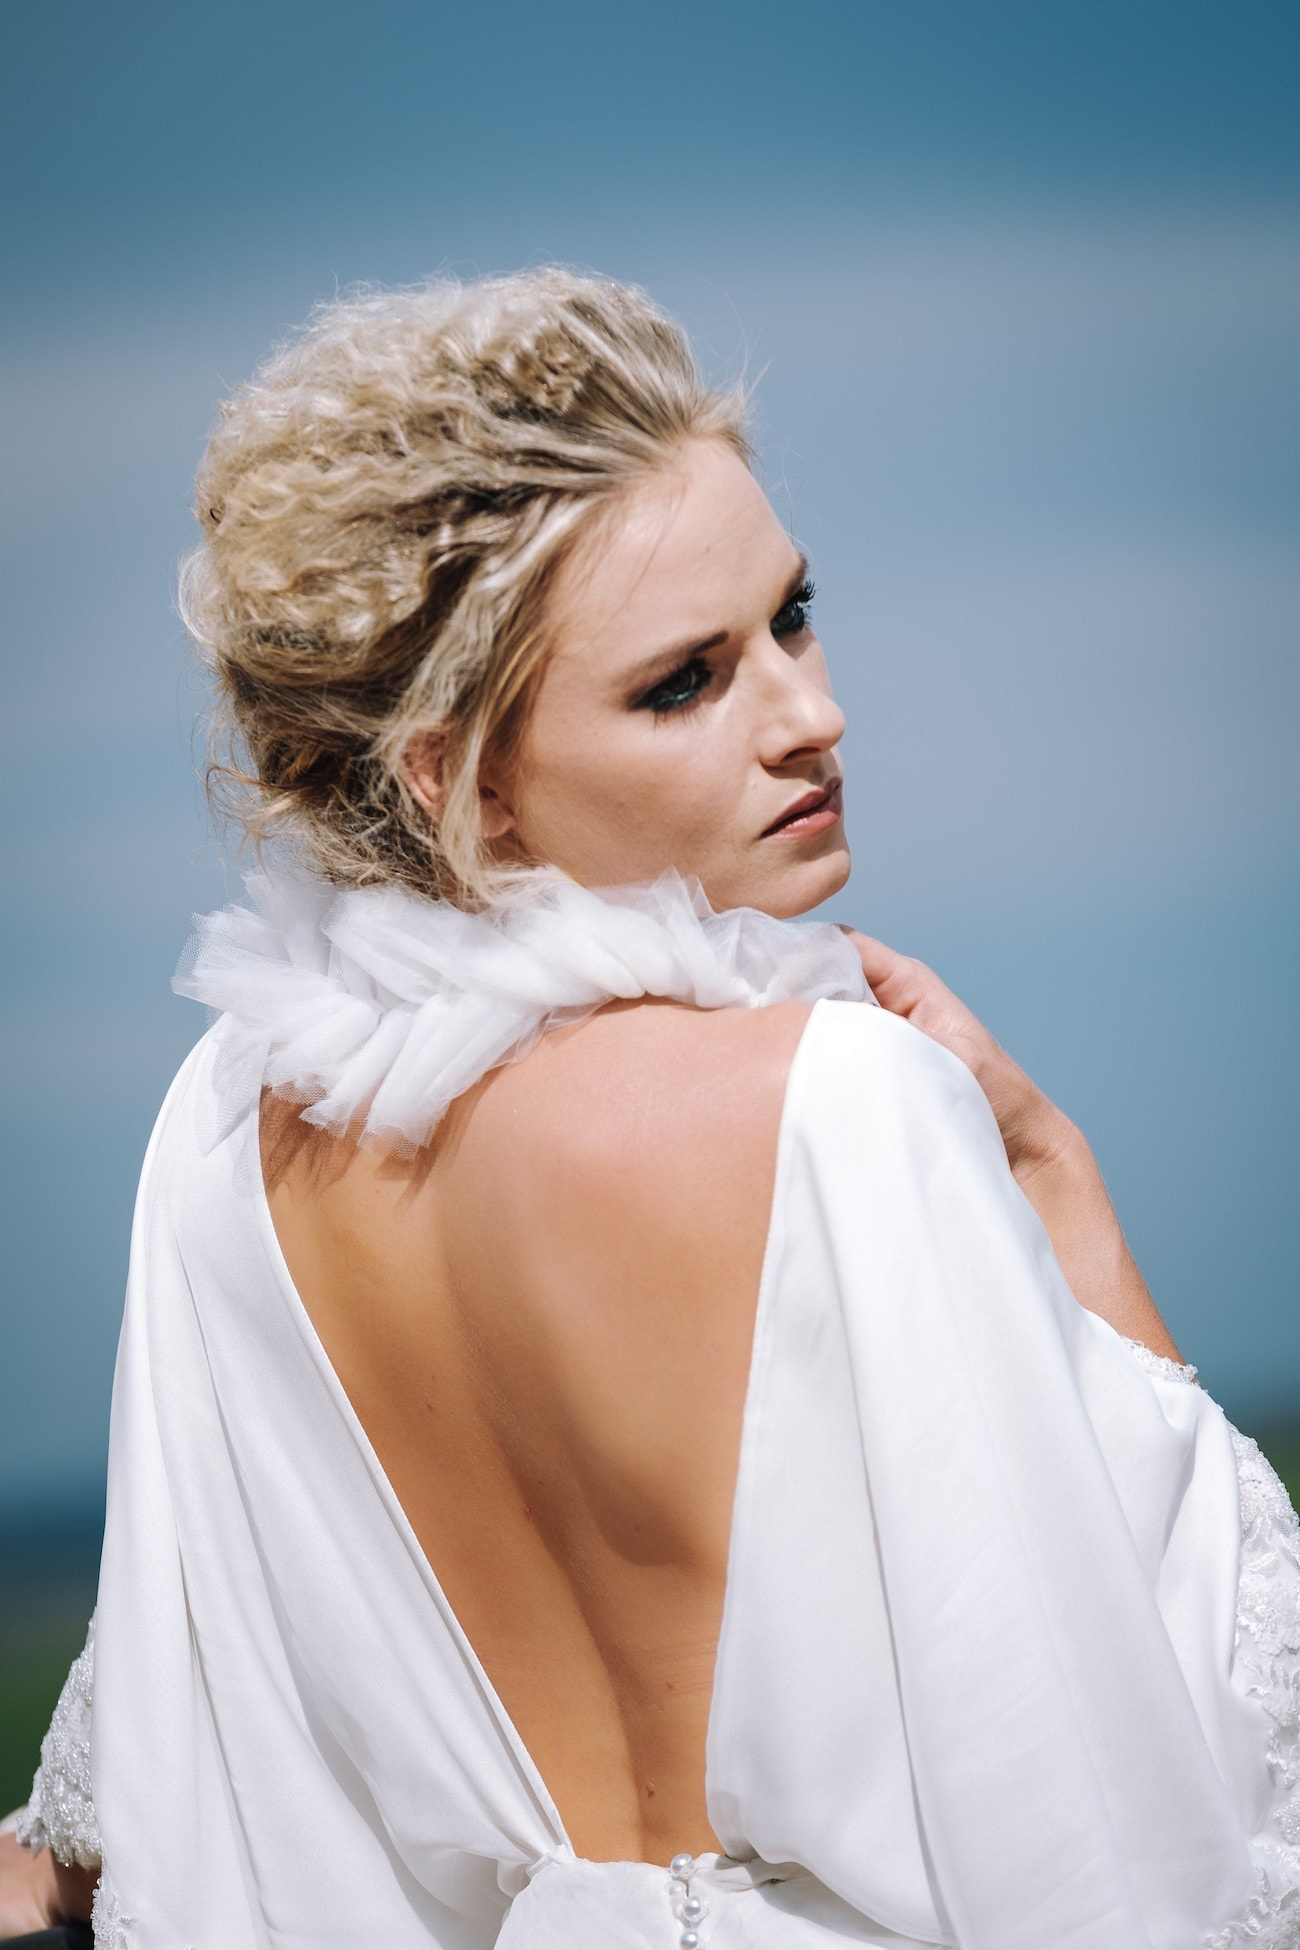 Backless Wedding Dress | Atmospheric Wedding Inspiration | Credit: The Shank Tank